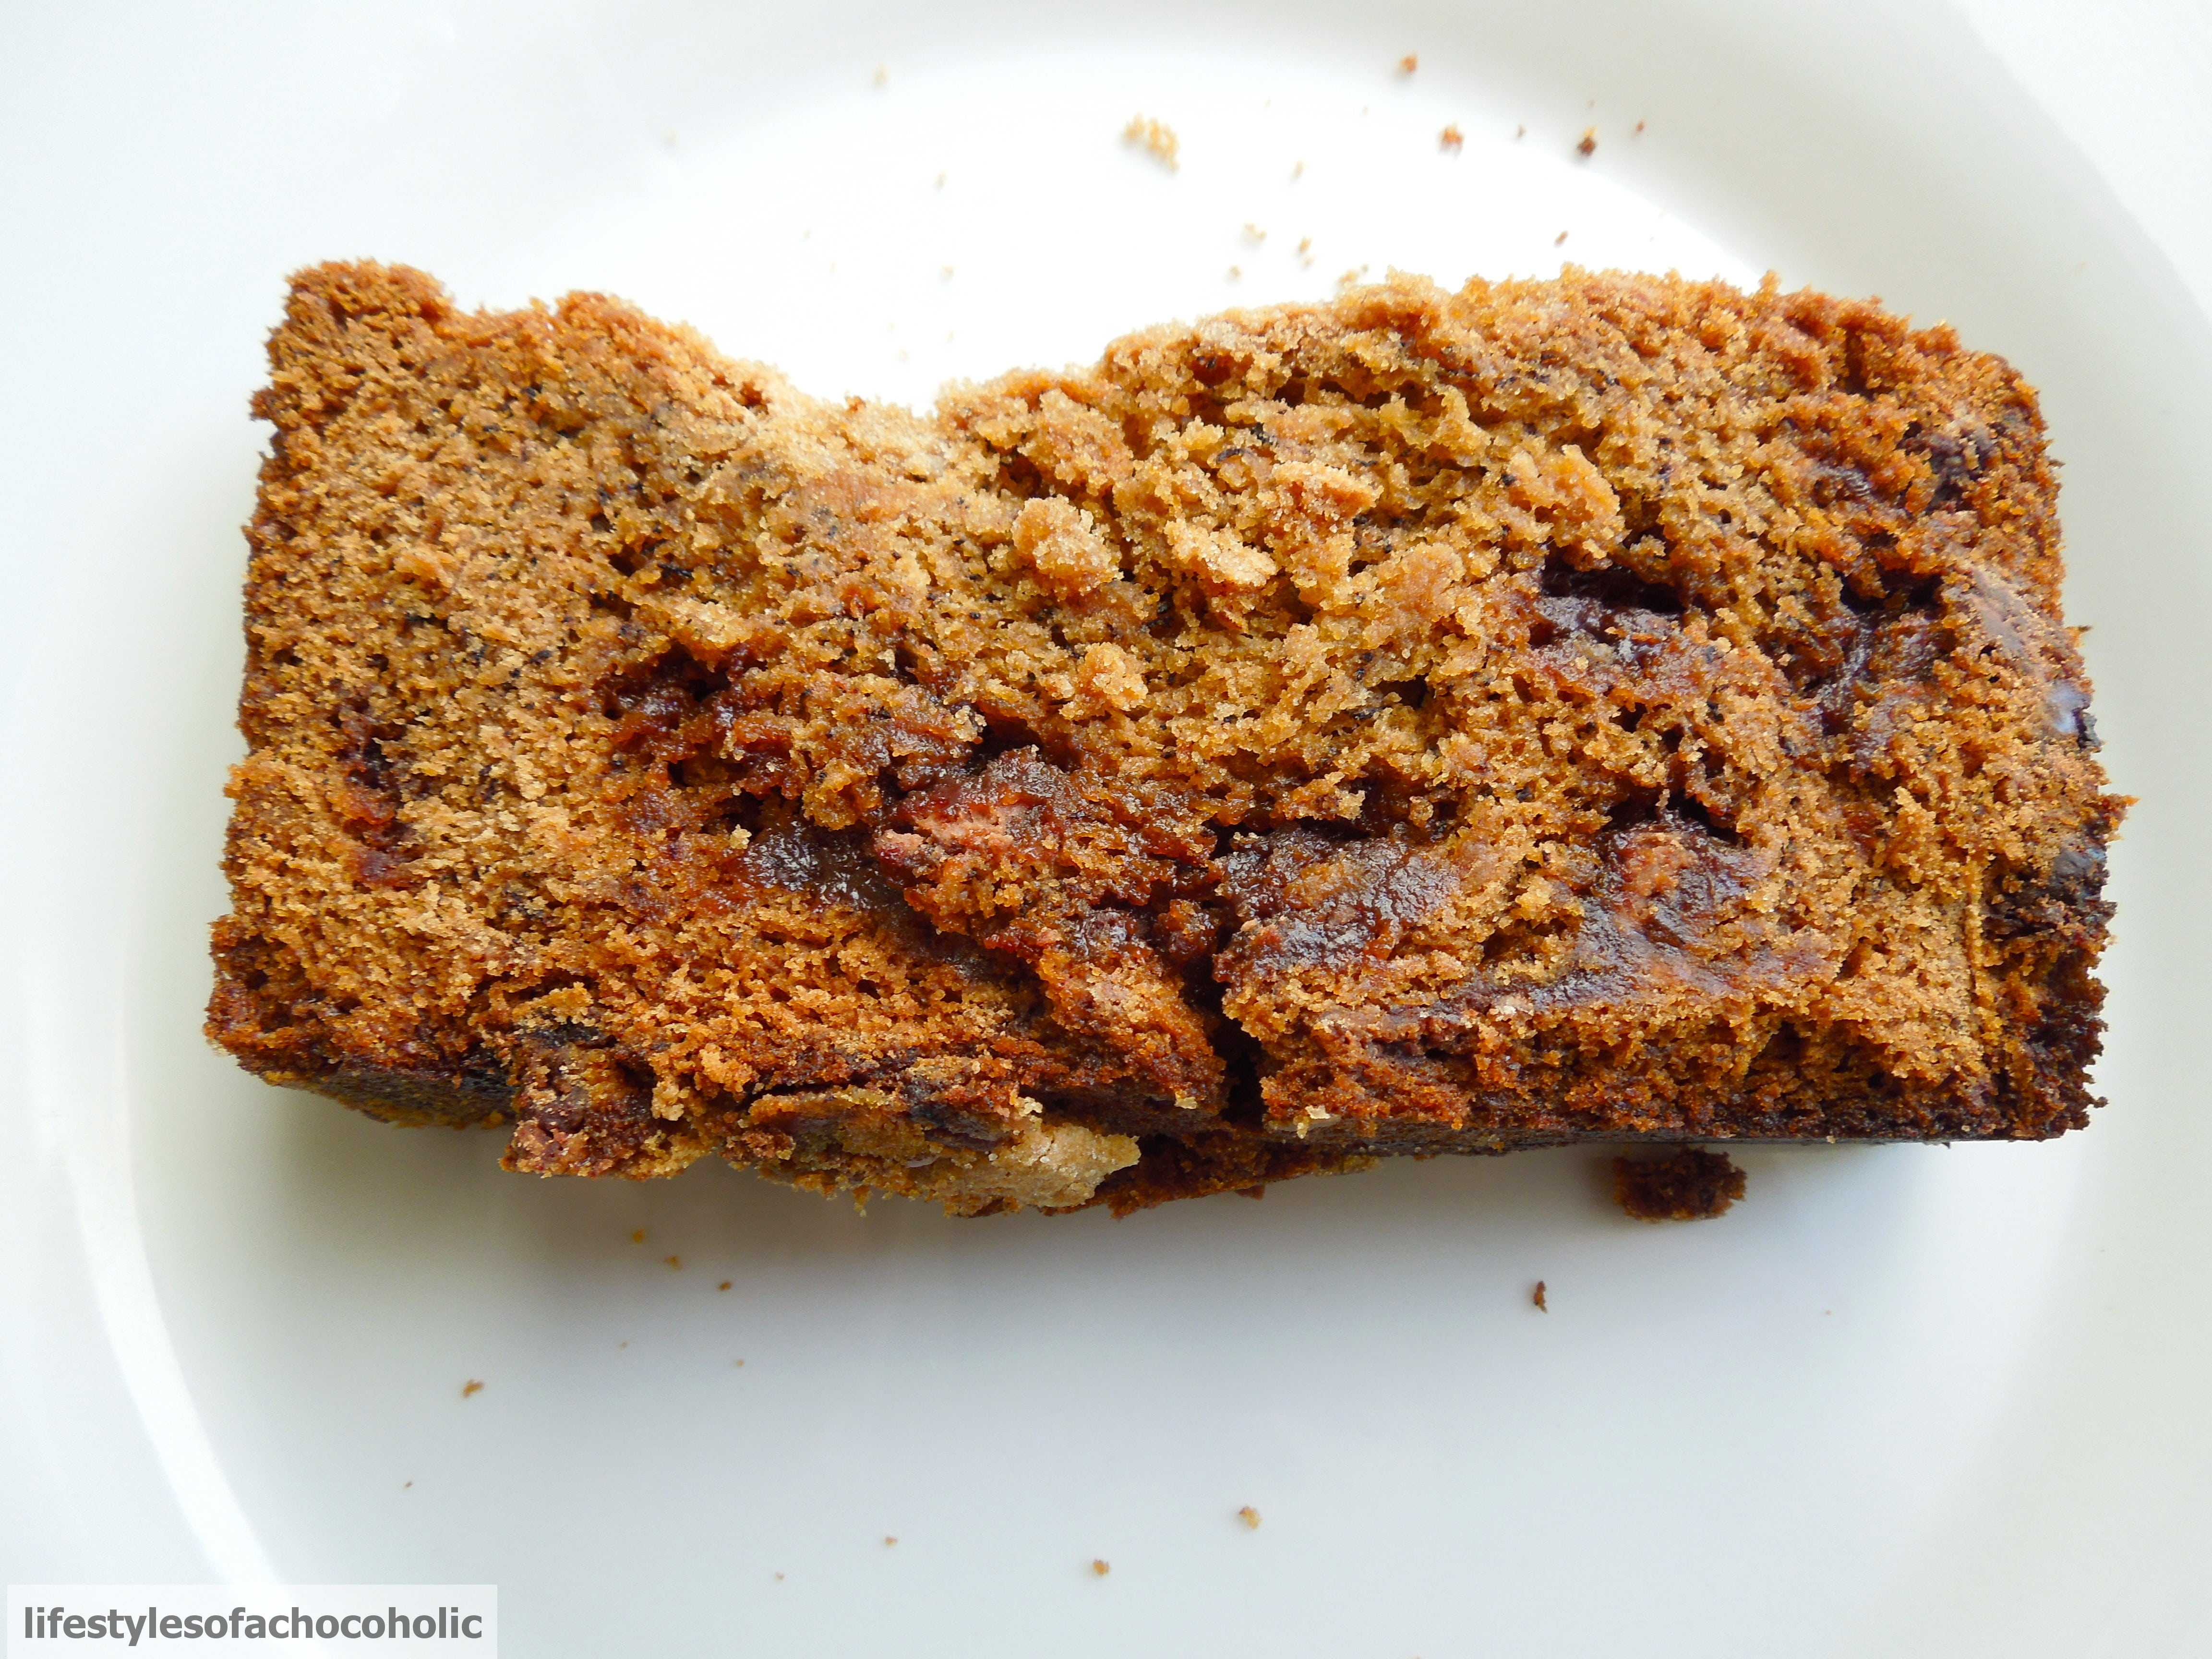 Biscoff Chocolate Chip Banana Bread slice on a white plate